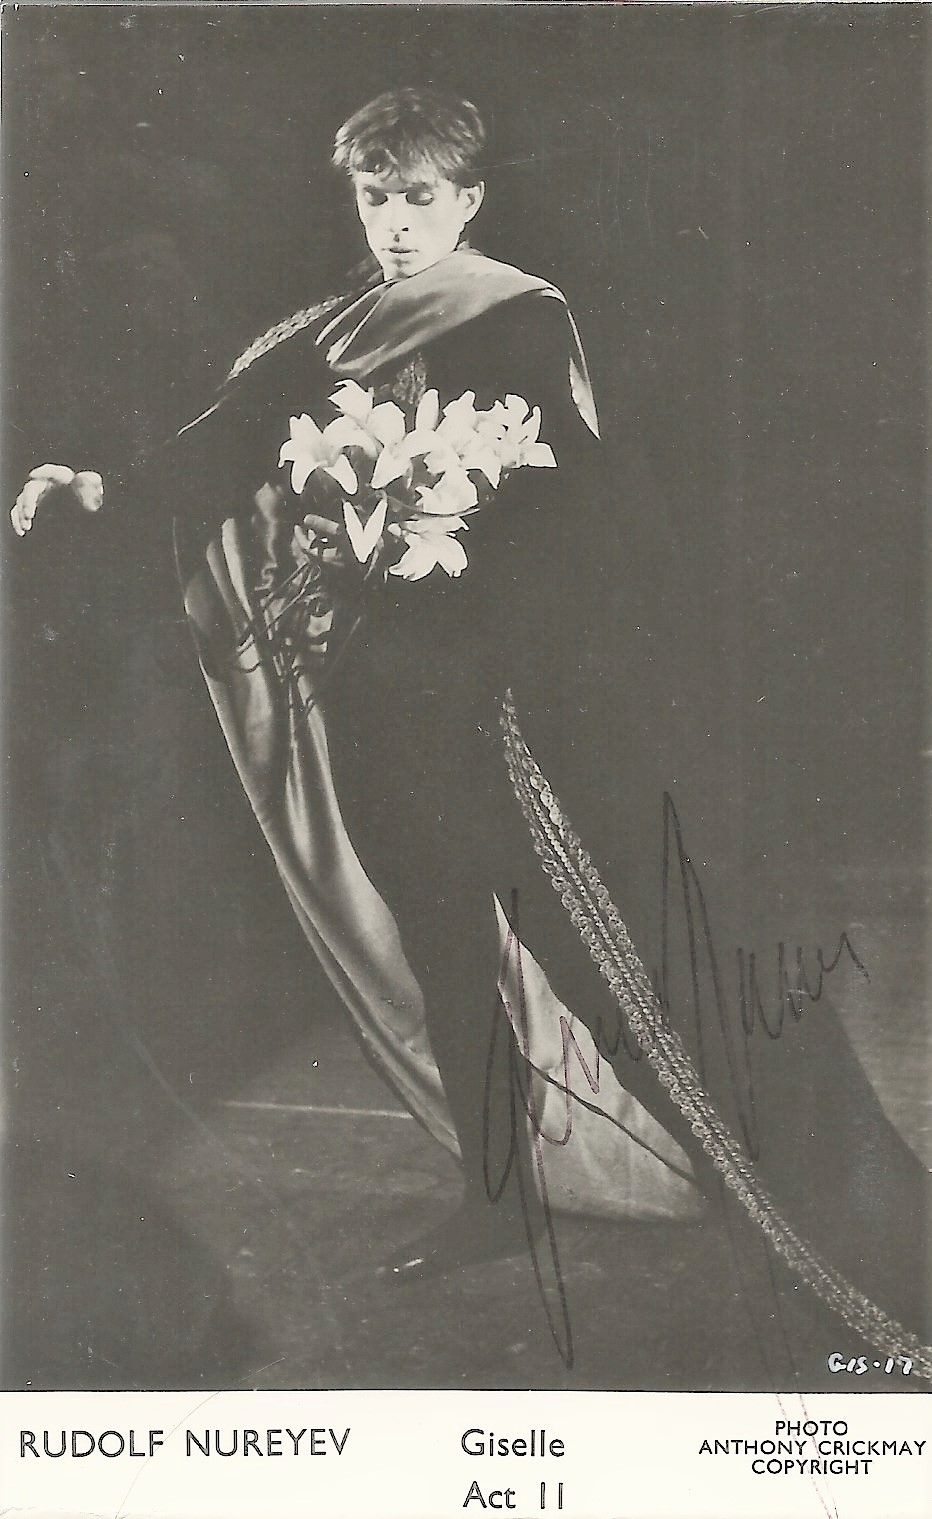 Rudolf Nureyev signed 5x3 black and white photo, photo taken during the scenes of 'Giselle Act 2'.